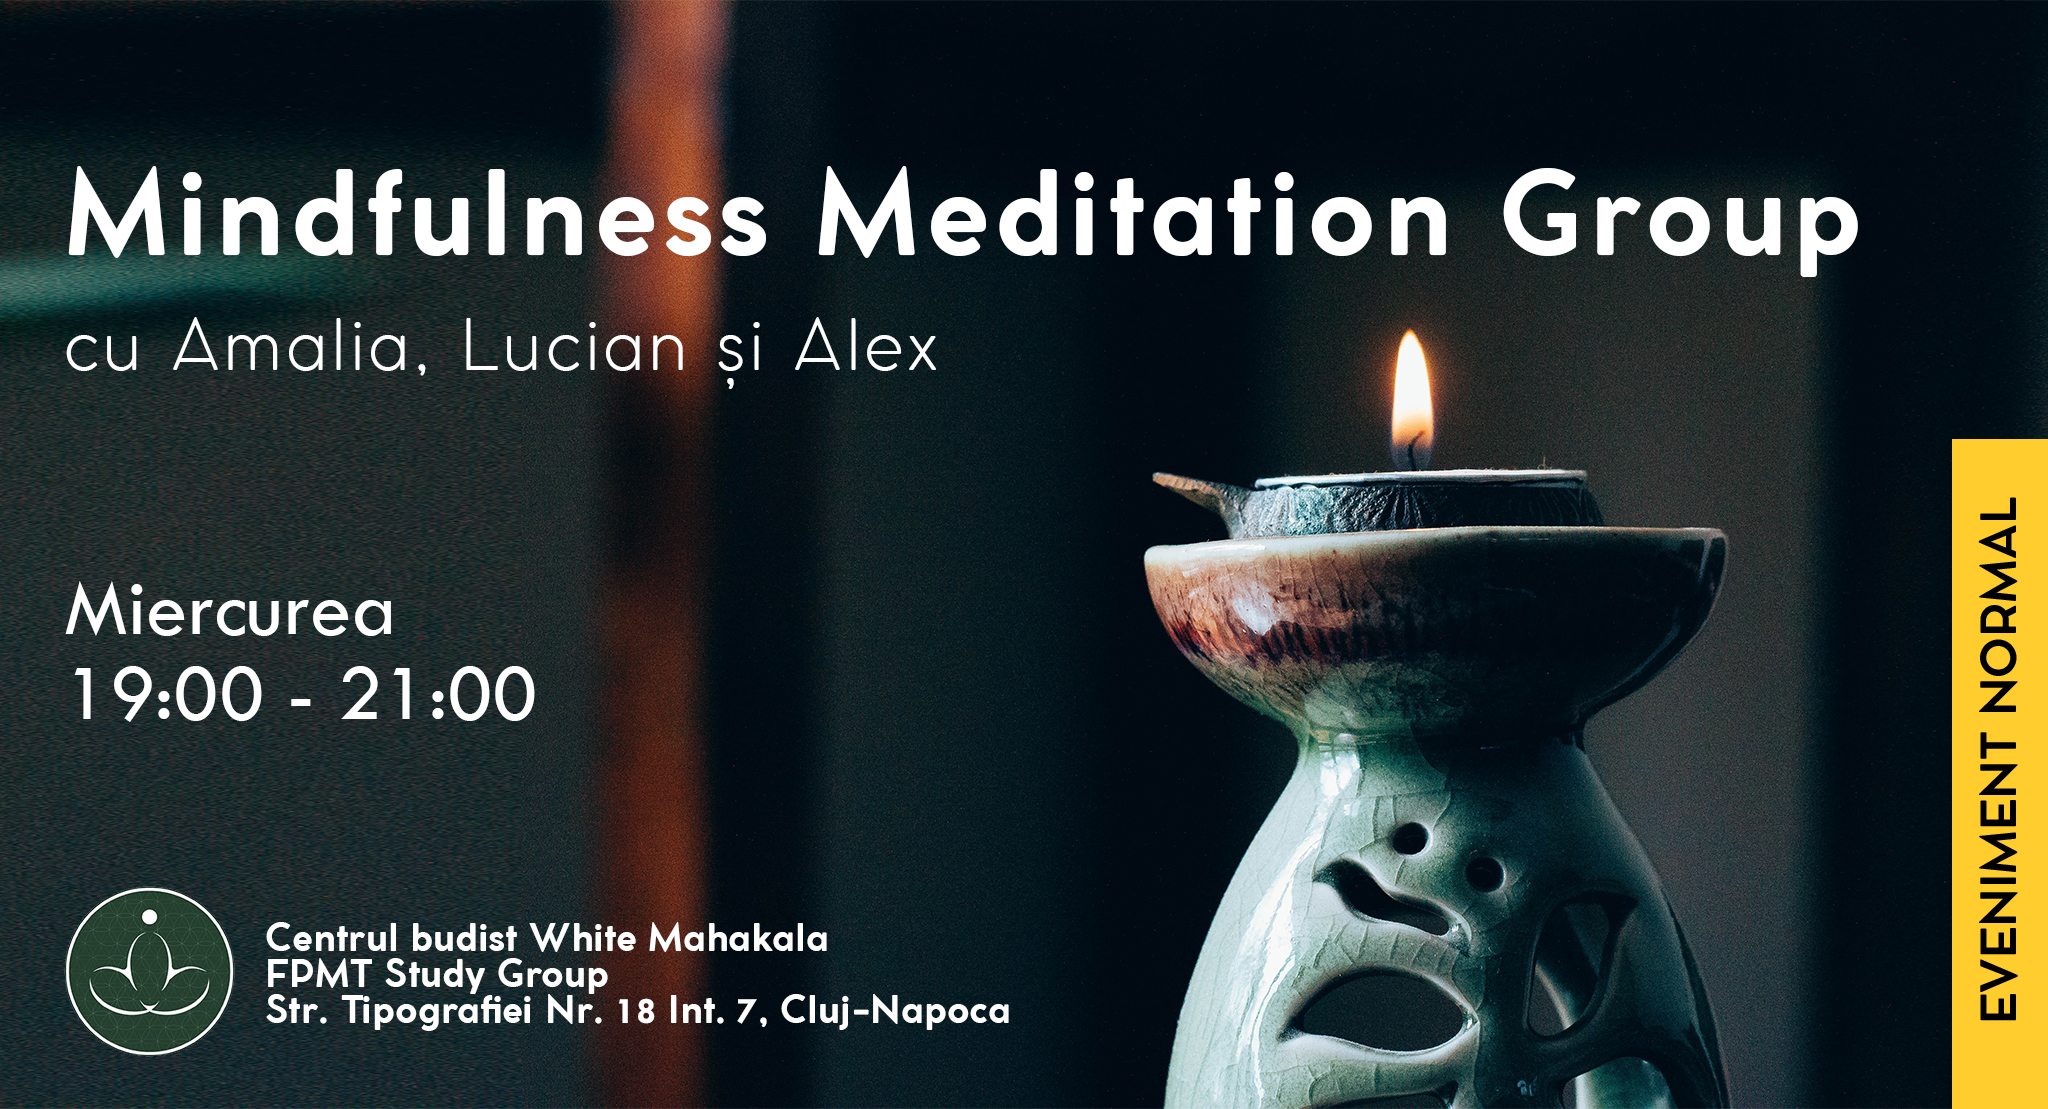 Mindfulness Meditation Group